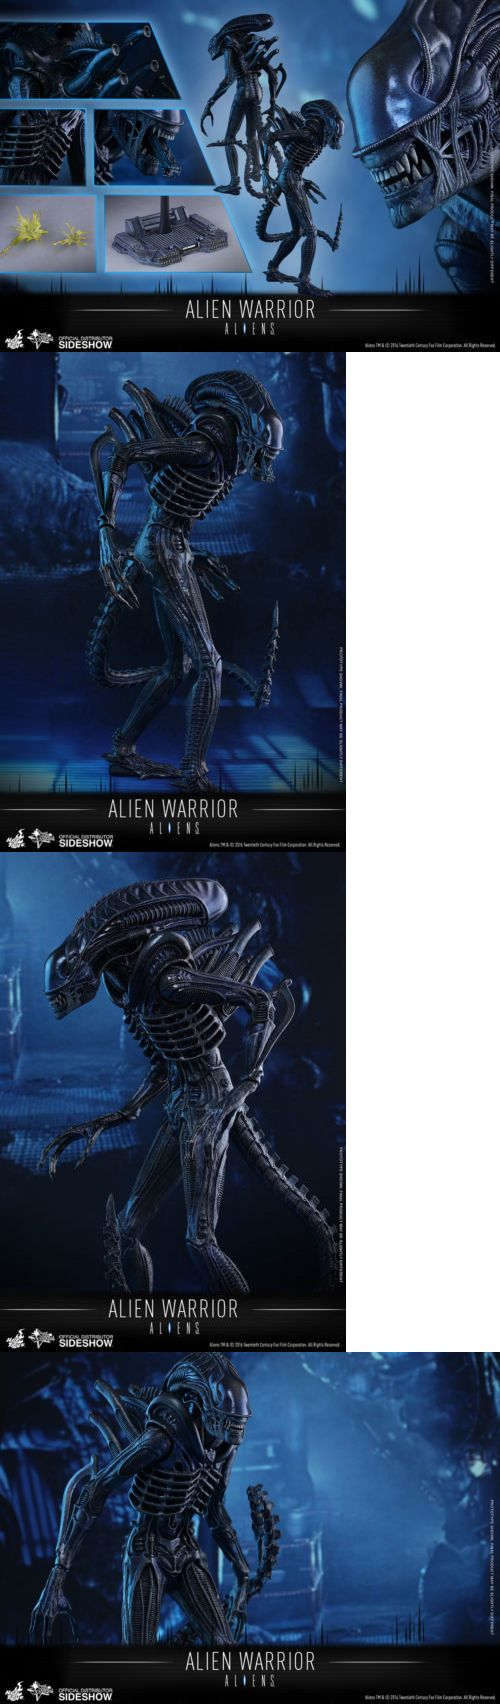 TV Movie and Video Games 75708: Hot Toys Alien Warrior 1 6 Scale Figure Aliens 30Th Anniversary Ripley New -> BUY IT NOW ONLY: $279.99 on eBay!